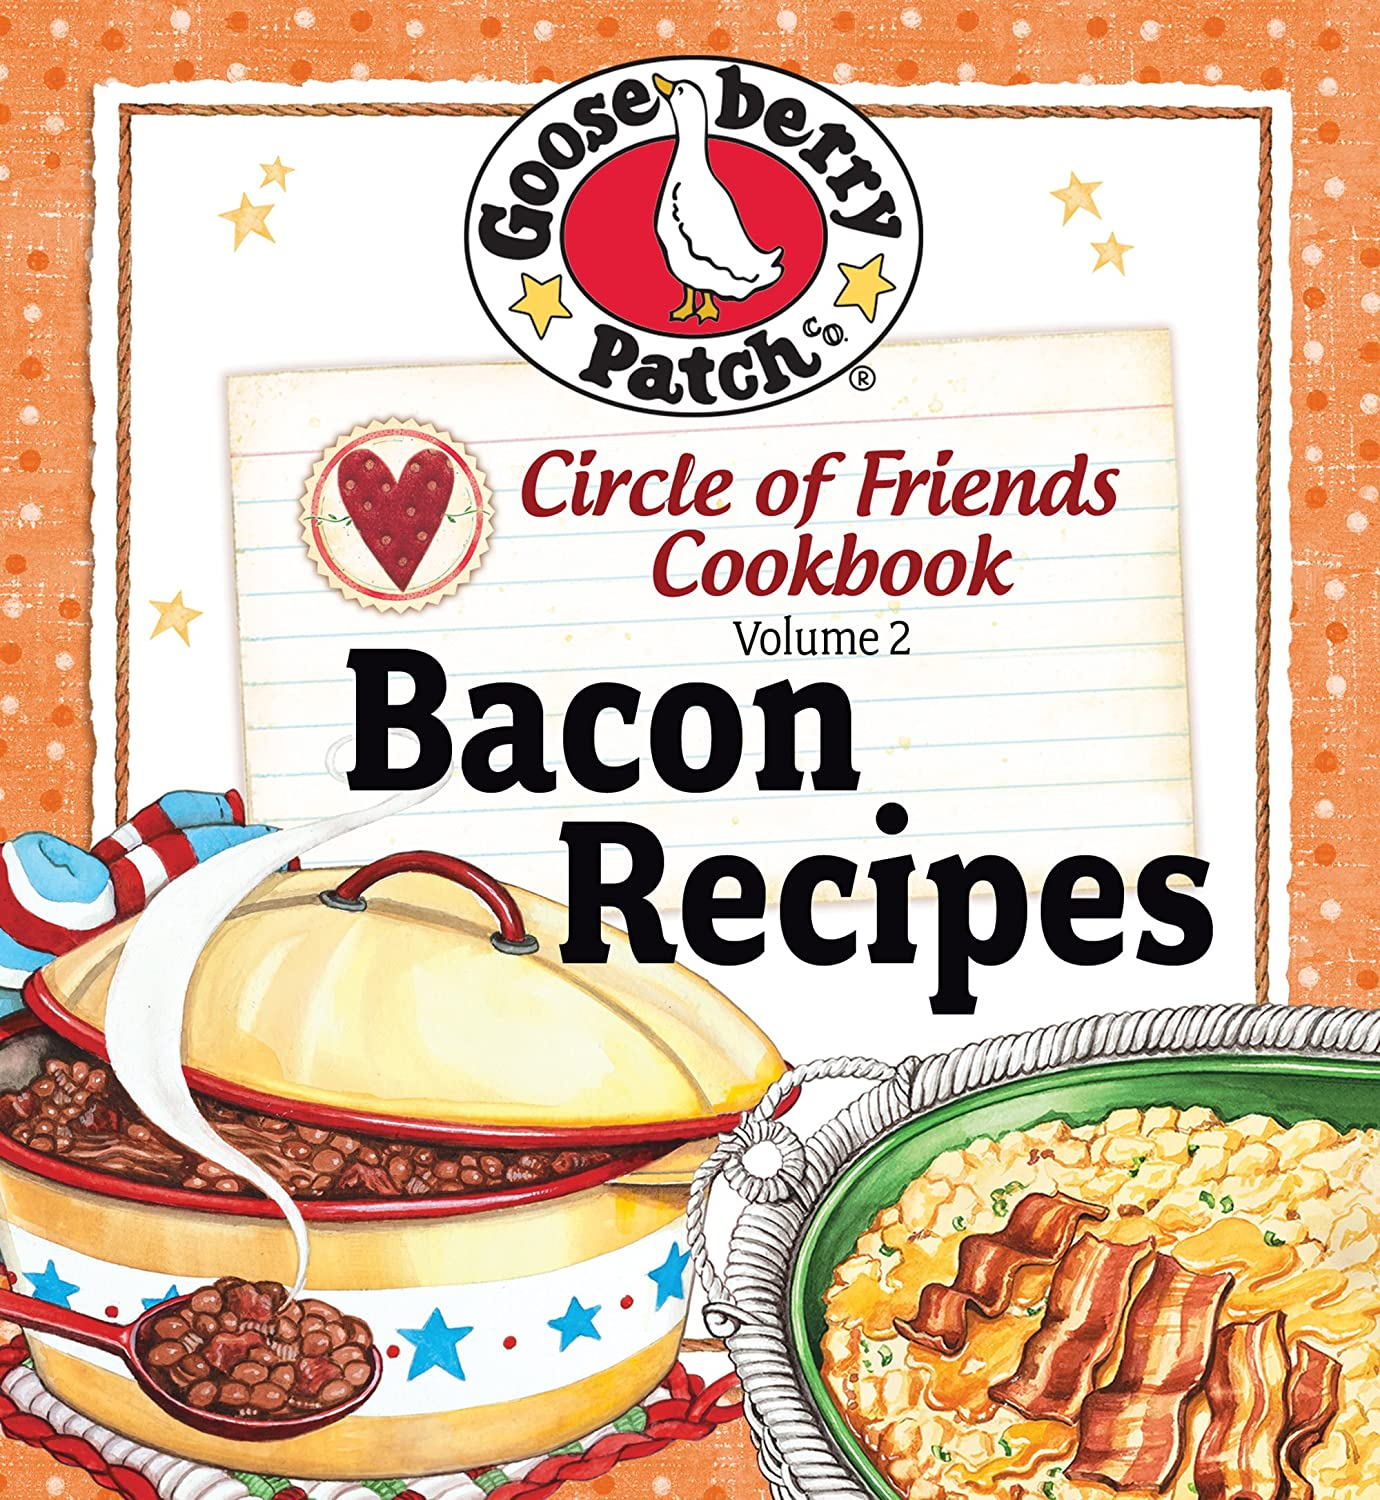 http://www.amazon.com/Circle-Friends-Cookbook-Bacon-Recipes-ebook/dp/B00IMLJ4V0/ref=as_sl_pc_ss_til?tag=lettfromahome-20&linkCode=w01&linkId=&creativeASIN=B00IMLJ4V0